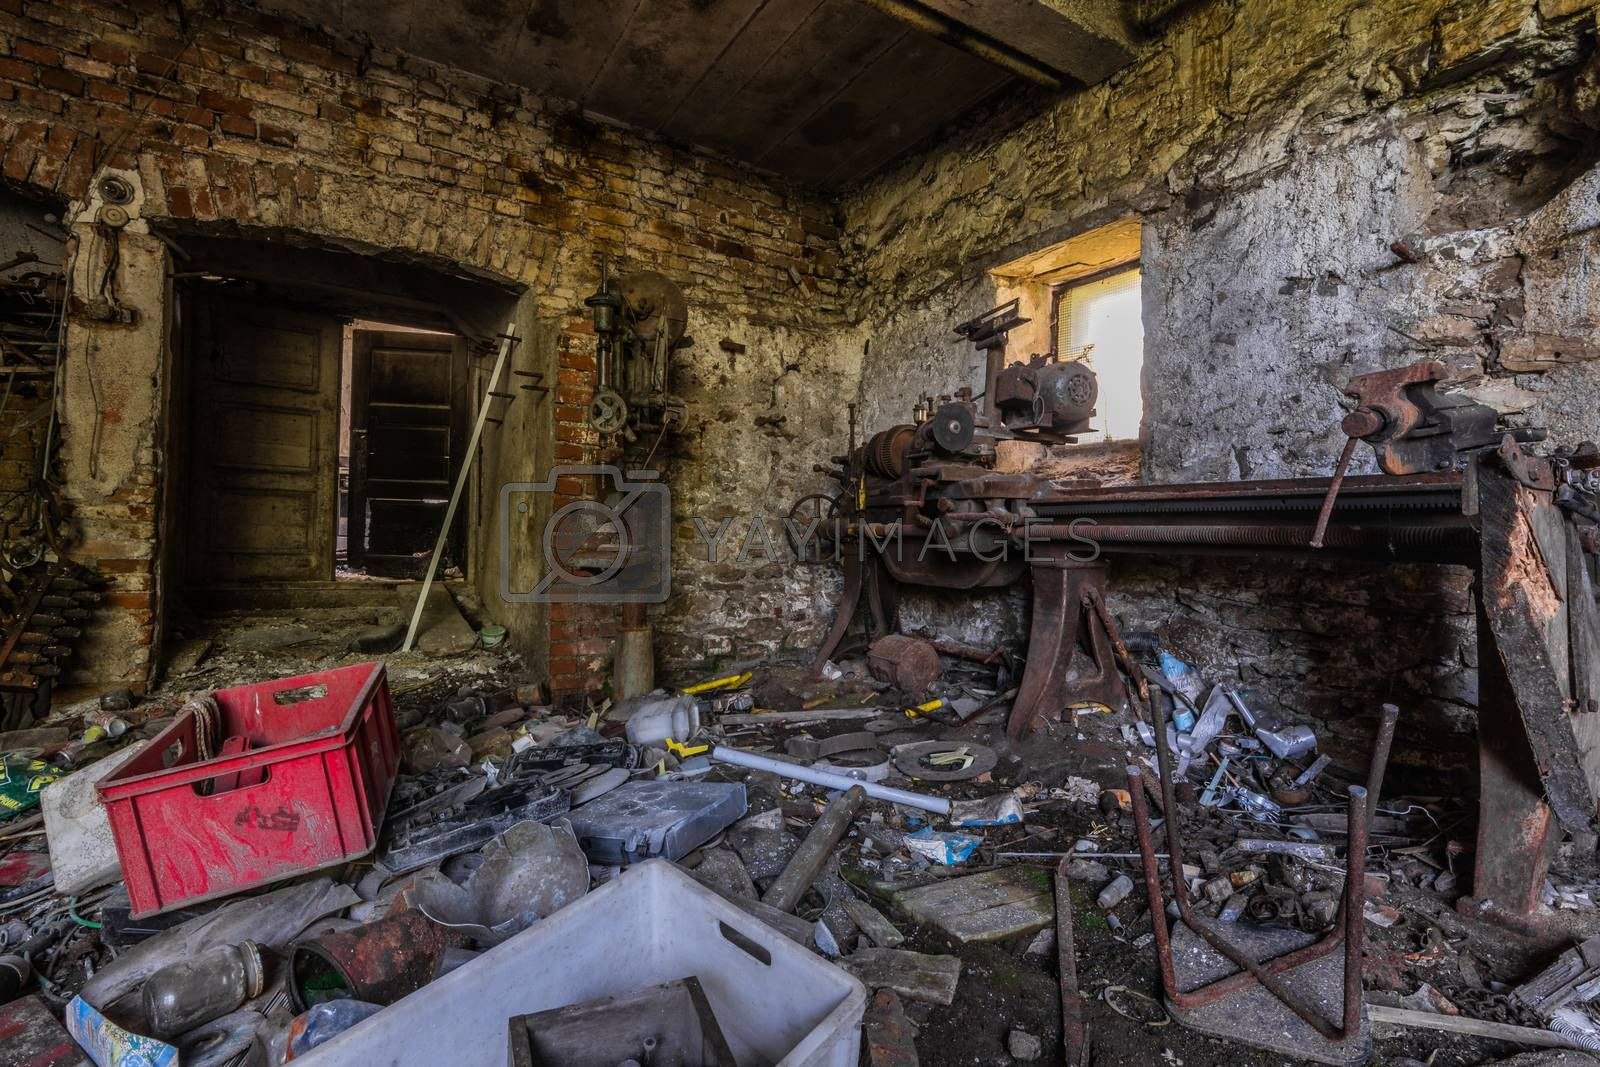 littered workshop from an abandoned farm